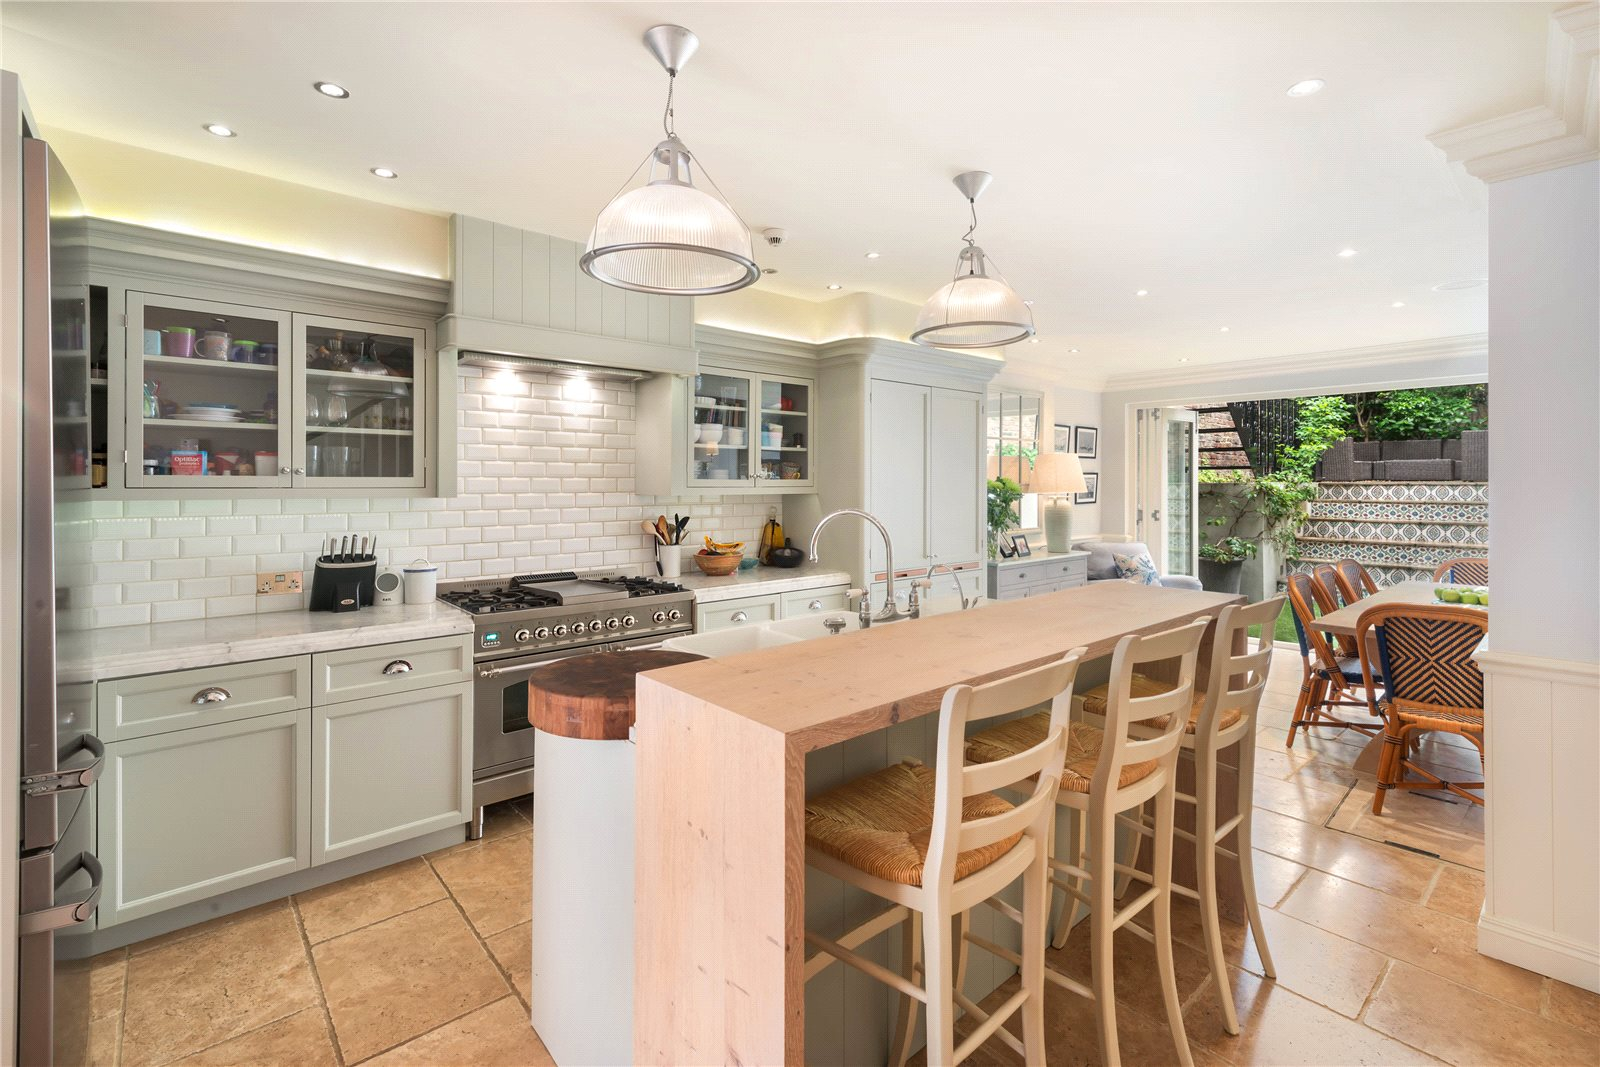 Single Family Home for Sale at Queensdale Road, Holland Park, London, W11 Holland Park, London, England